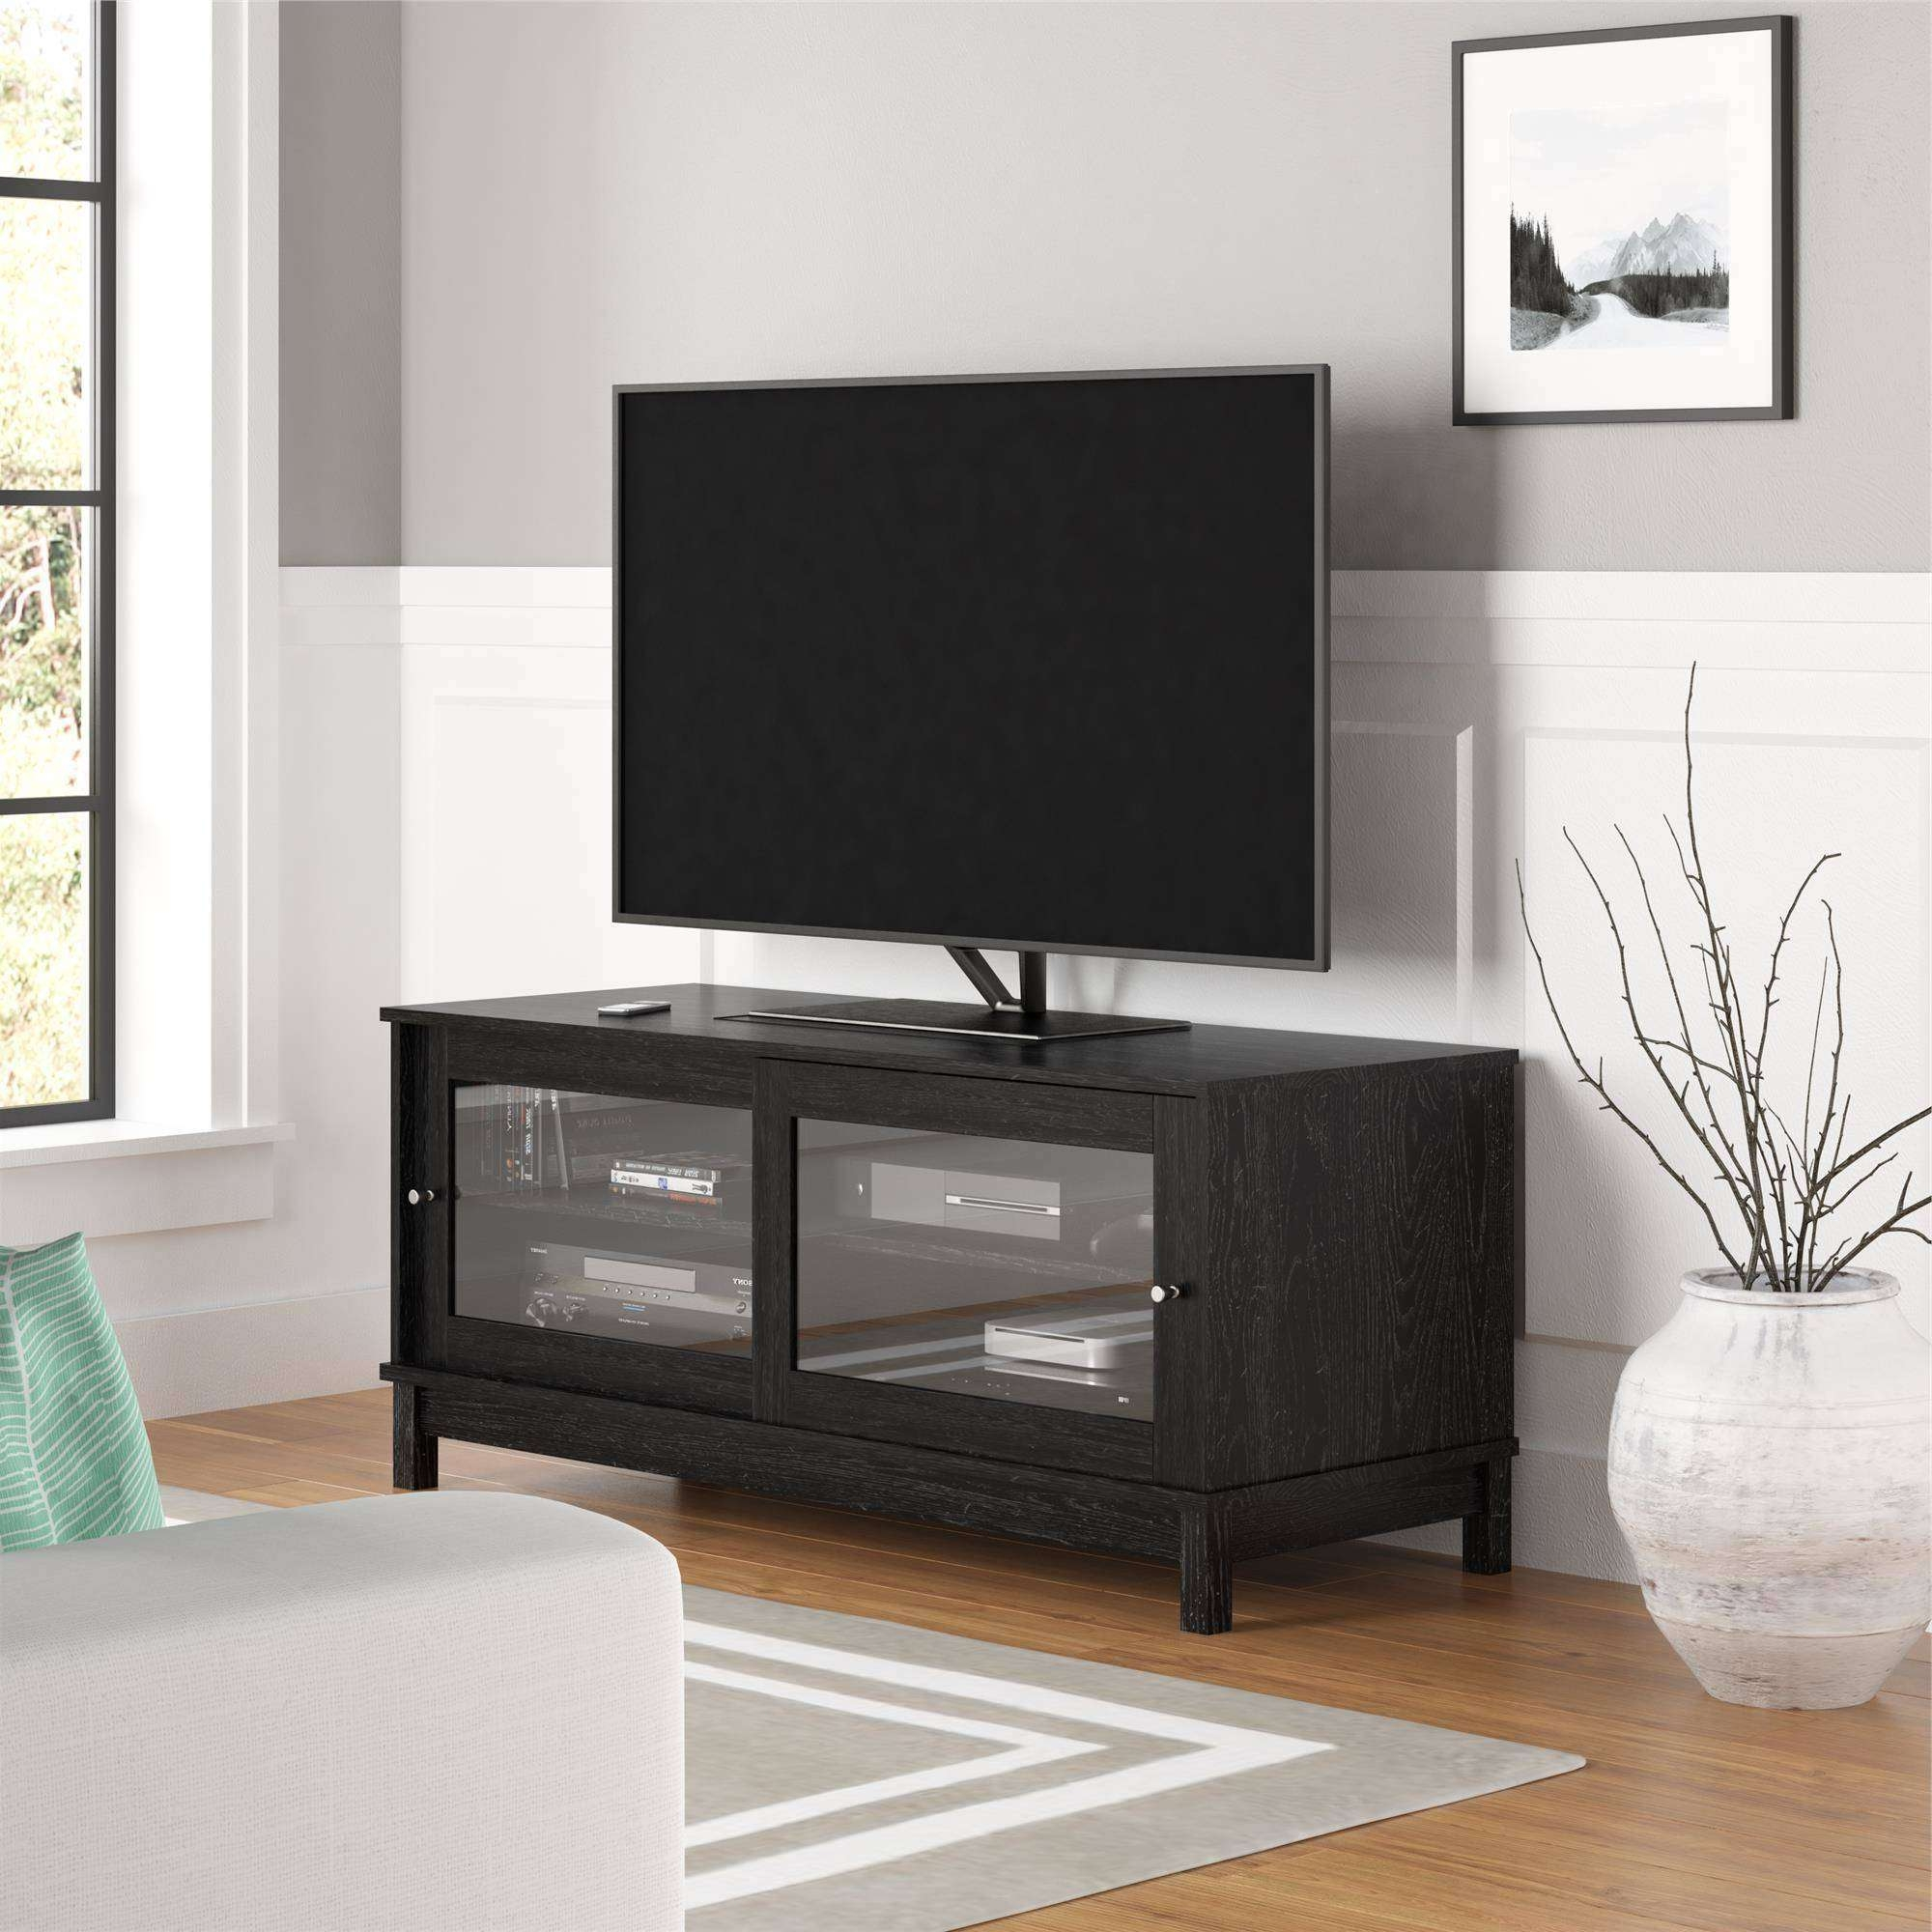 Tv Stand : Whiteallv Desk With Glass Door Cabinet And Side For Tv Cabinets With Glass Doors (View 18 of 20)